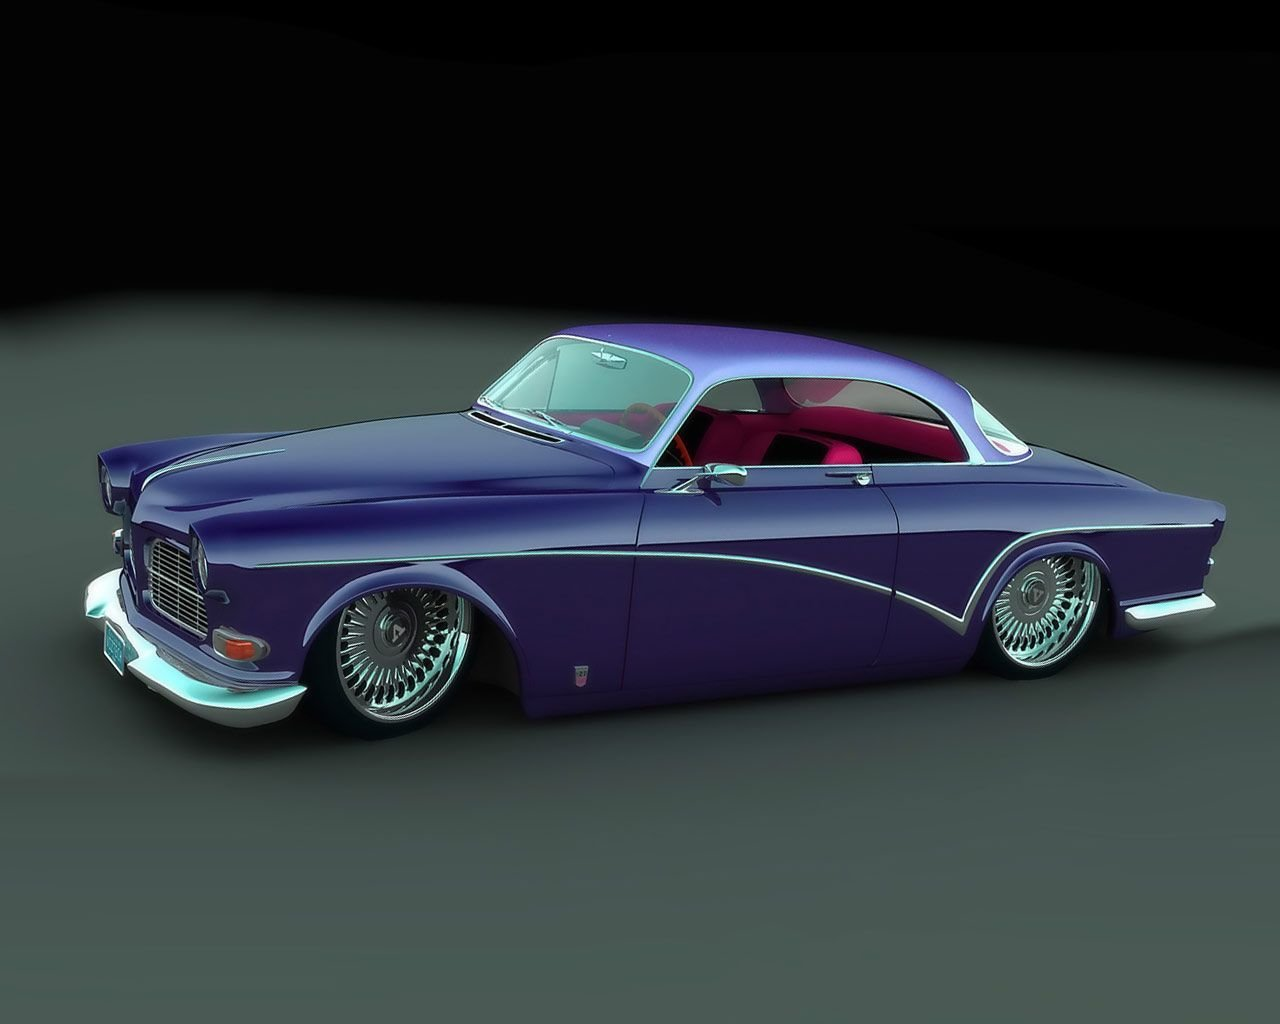 New Pin By Thomas Mcdaniel On Car Pinterest Volvo Amazon On This Month